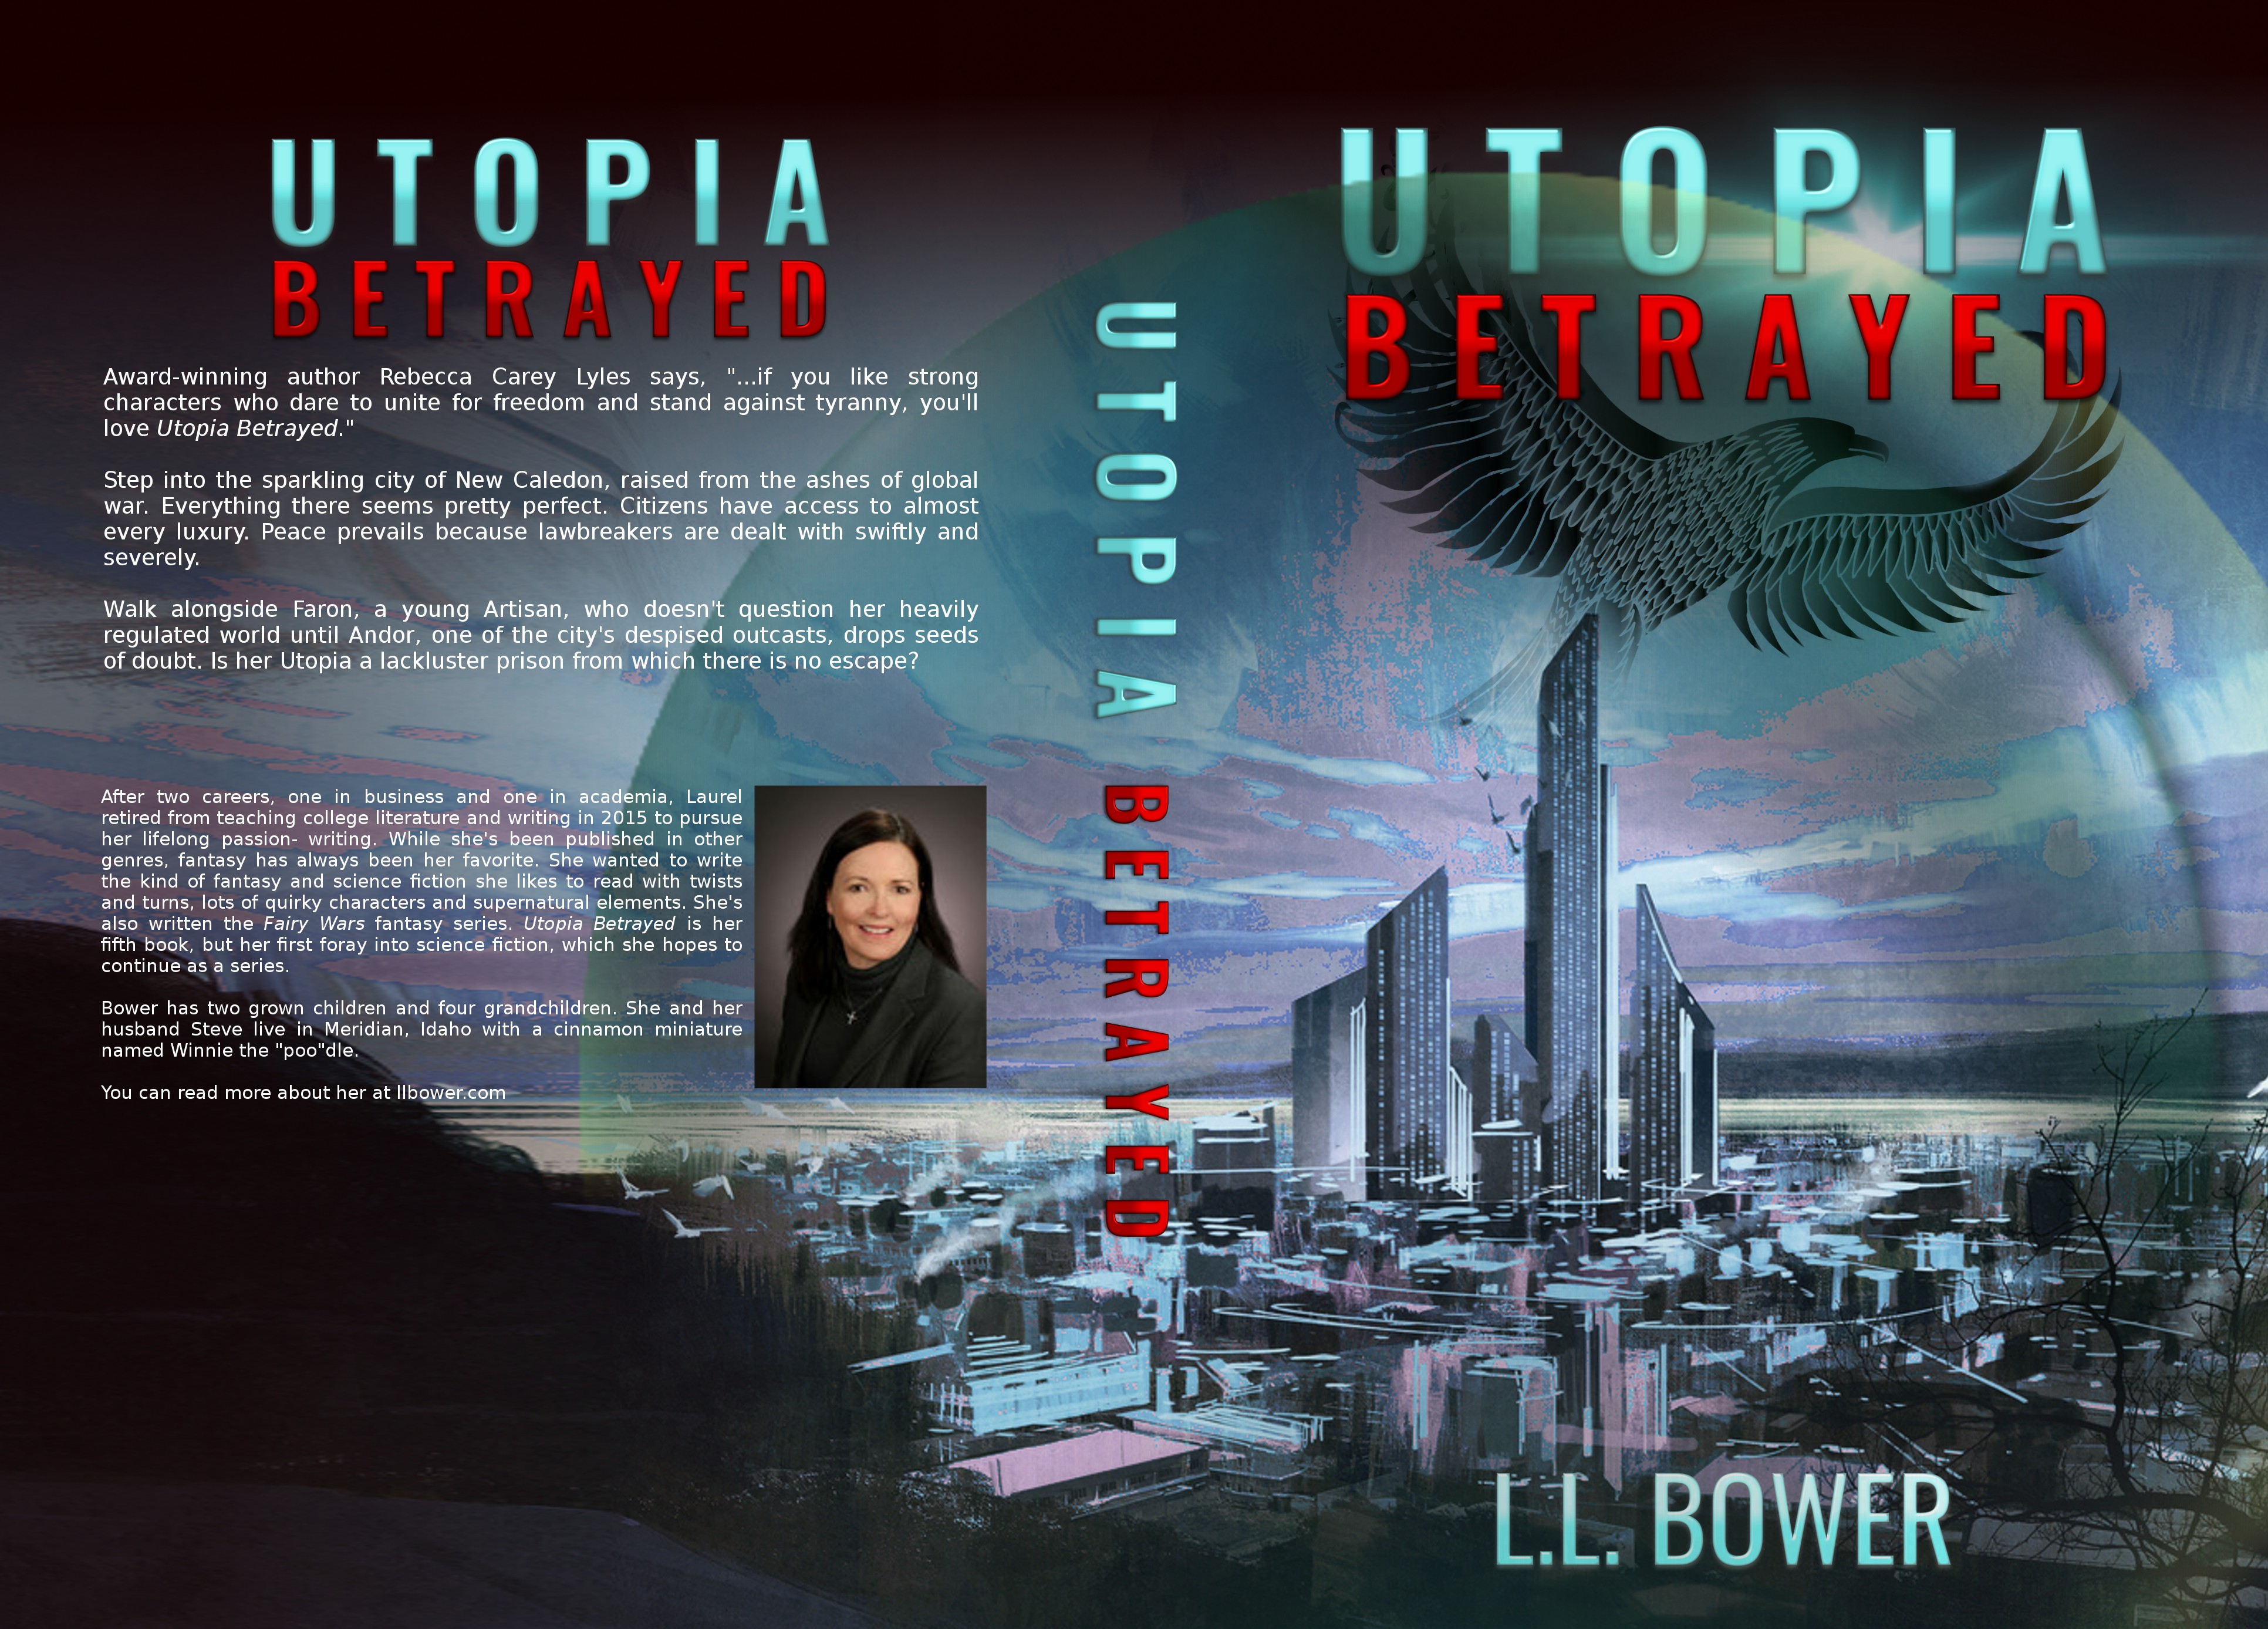 Futuristic City under a Dome Controlled by a Ruthless Leader